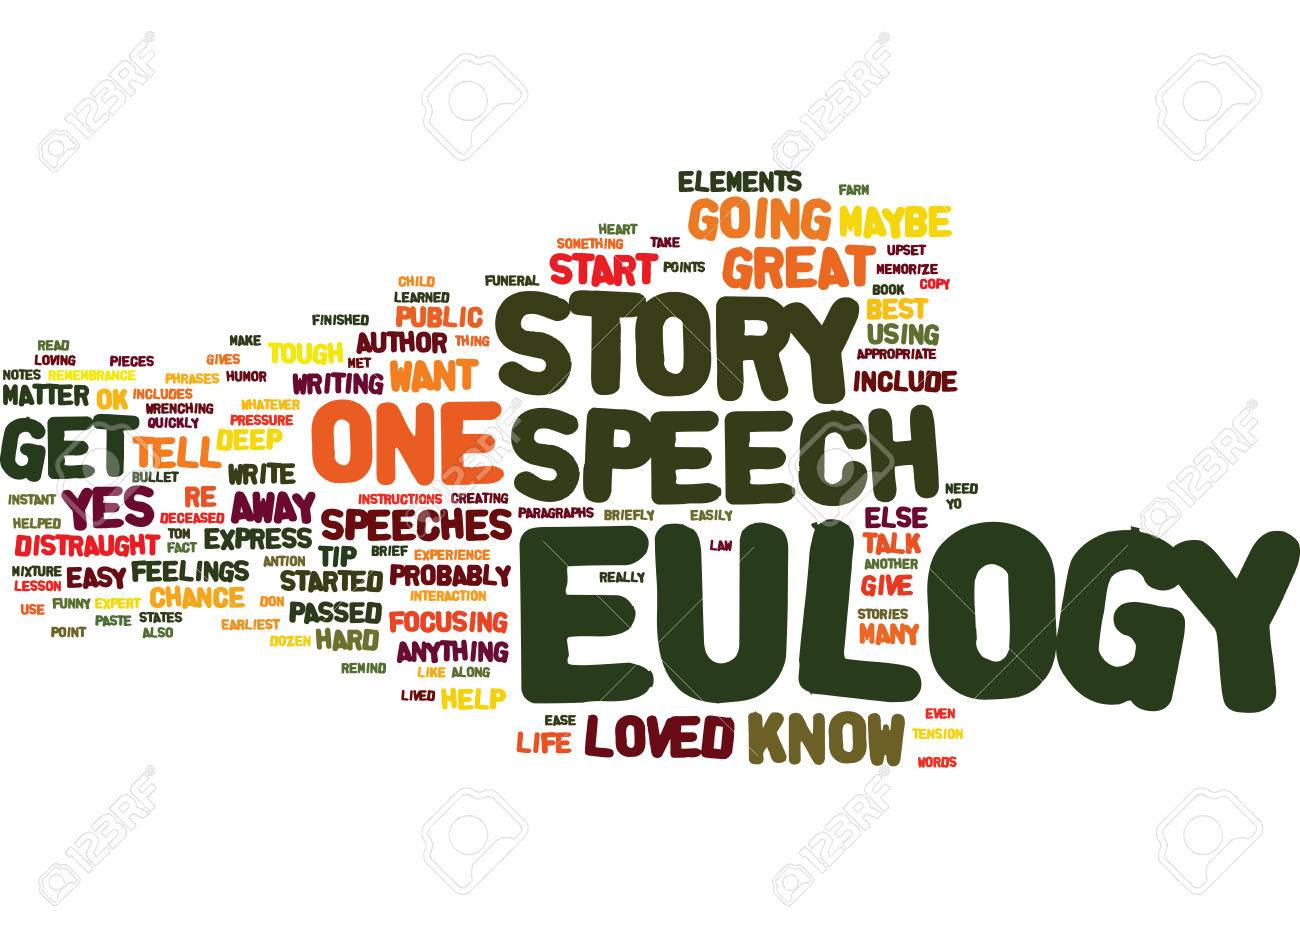 EULOGY SPEECHES USE A STORY TO HELP YOU GET STARTED Text 1300x938